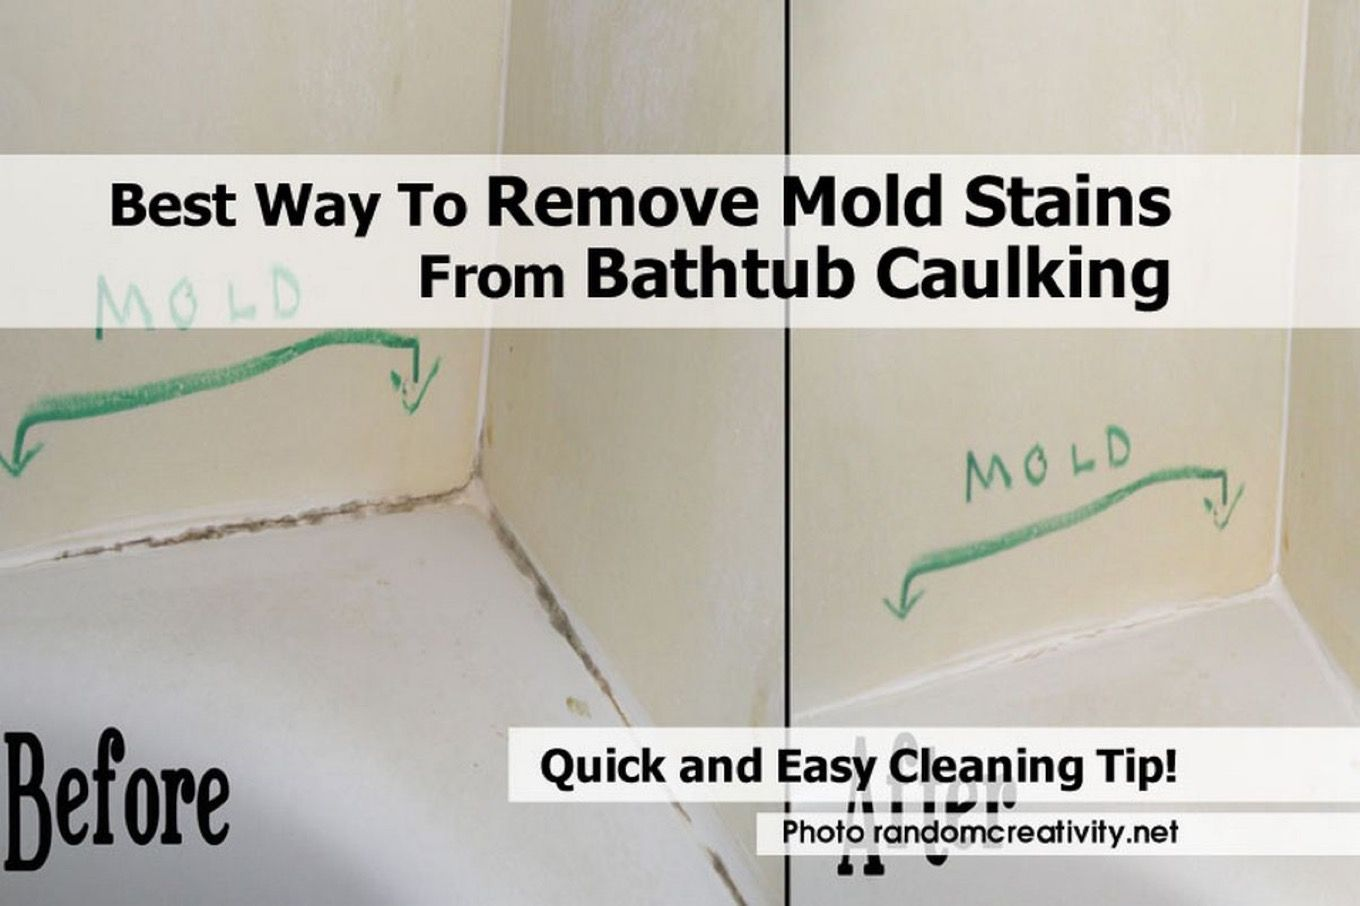 Bathtub Caulking Is A Common Place For Stains And Once They Set In It Can Be Very Difficult To Get Rid Of Them Mold Remover Bathtub Caulking Remove Mold Stains